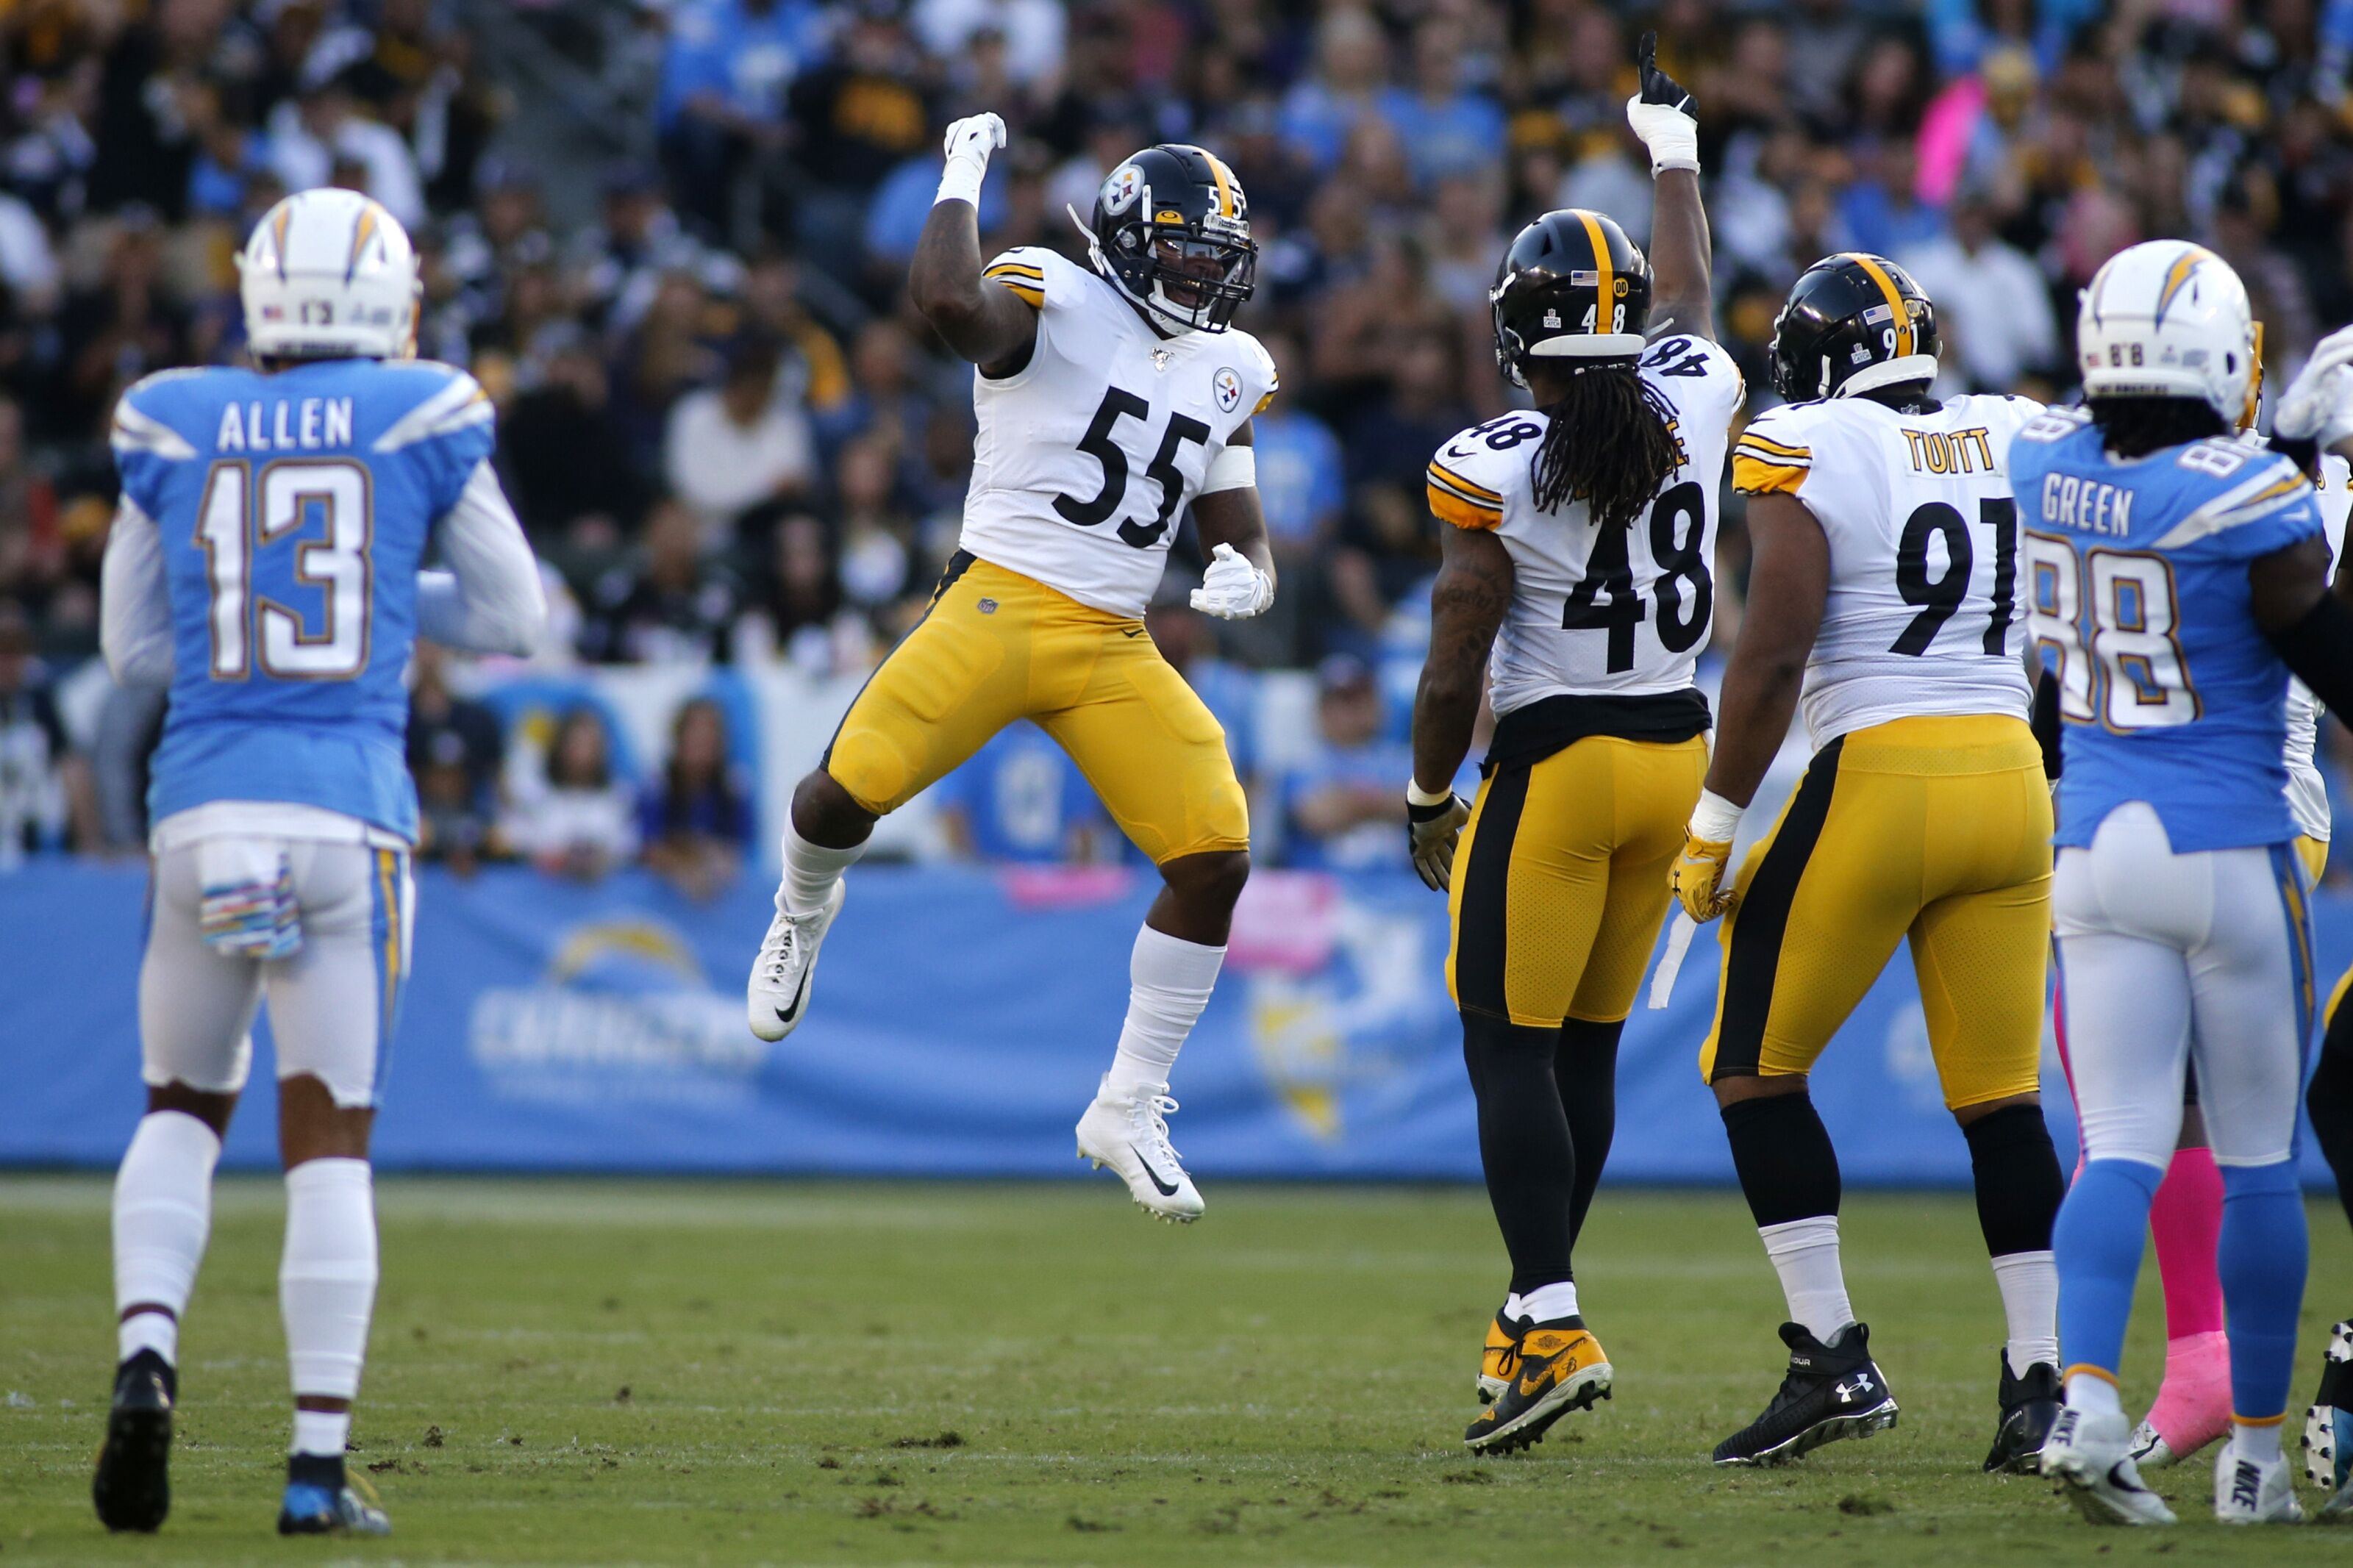 Steelers stock rising/falling following win in Los Angeles